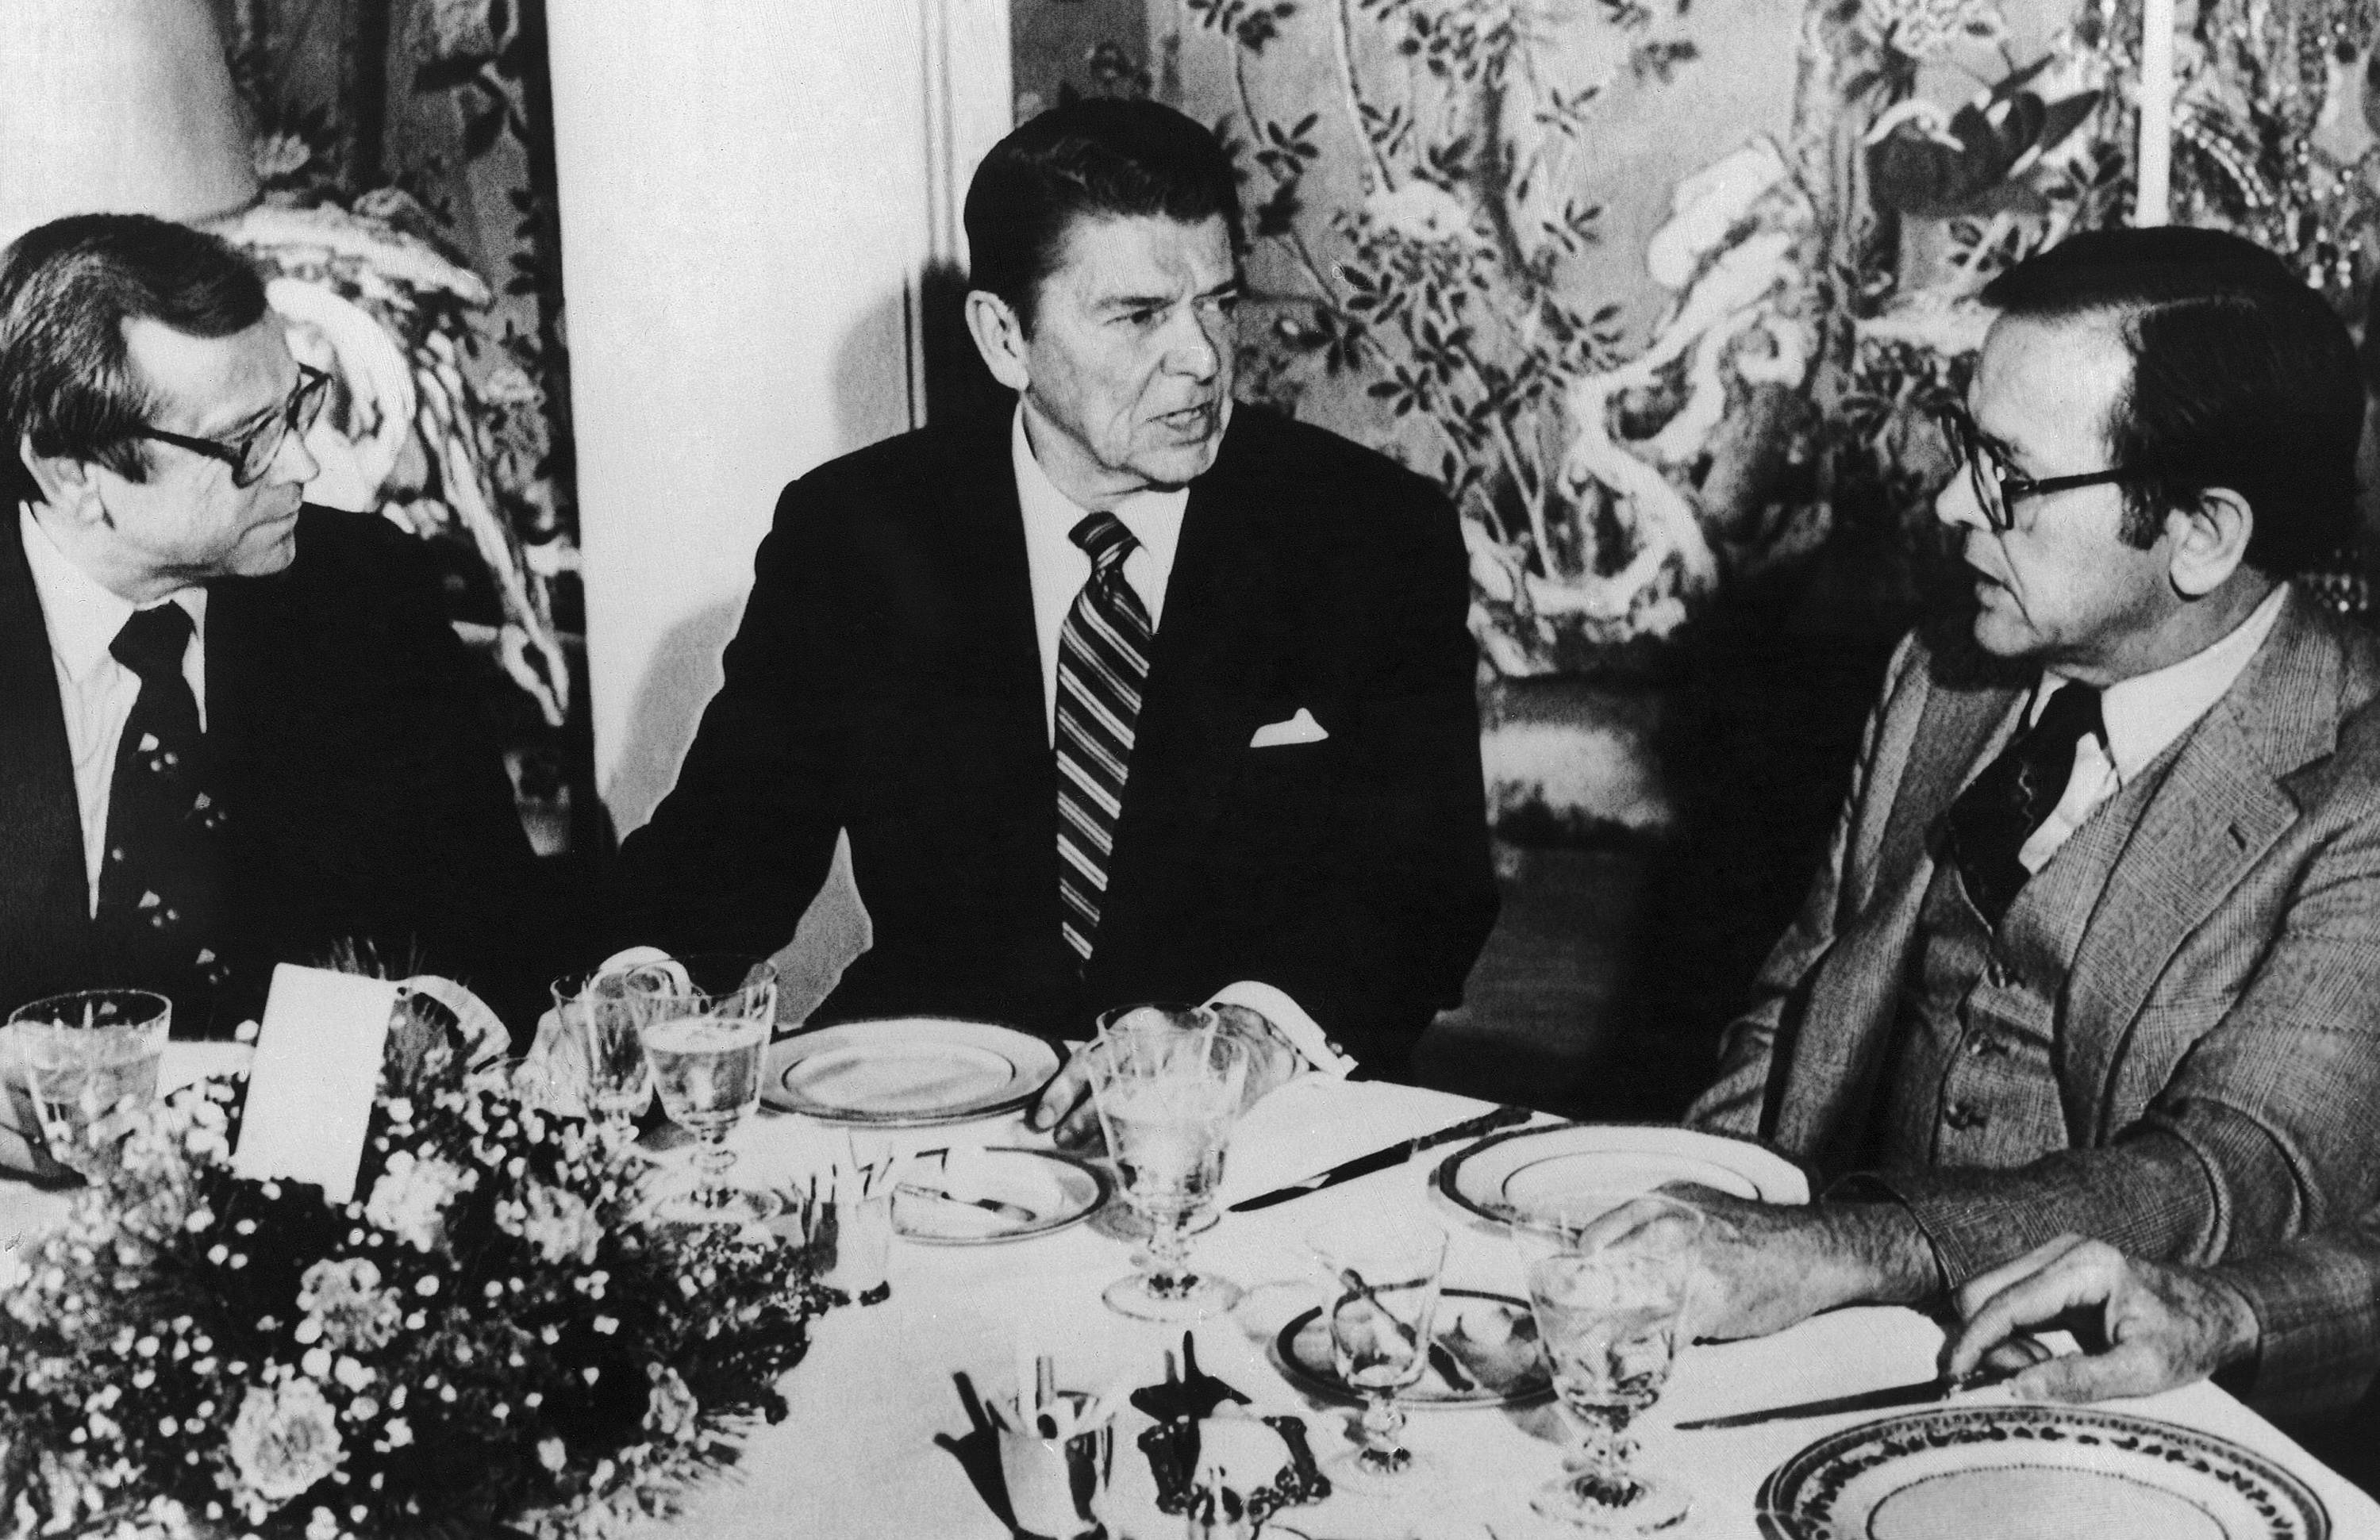 President-elect Ronald Reagan, center, talking with Sen. Ted Stevens, an Alaska Republican, right, and Sen. Howard Baker, a Tennessee Republican, during a luncheon at Blair House in Washington. Baker, who asked what President Richard Nixon knew about Watergate, has died. He was 88. Baker, a Republican, served 18 years in the Senate. He earned the respect of Republicans and Democrats alike and rose to the post of majority leader. He served as White House chief of staff at the end of the Reagan administration and was U.S. ambassador to Japan during President George W. Bush's first term